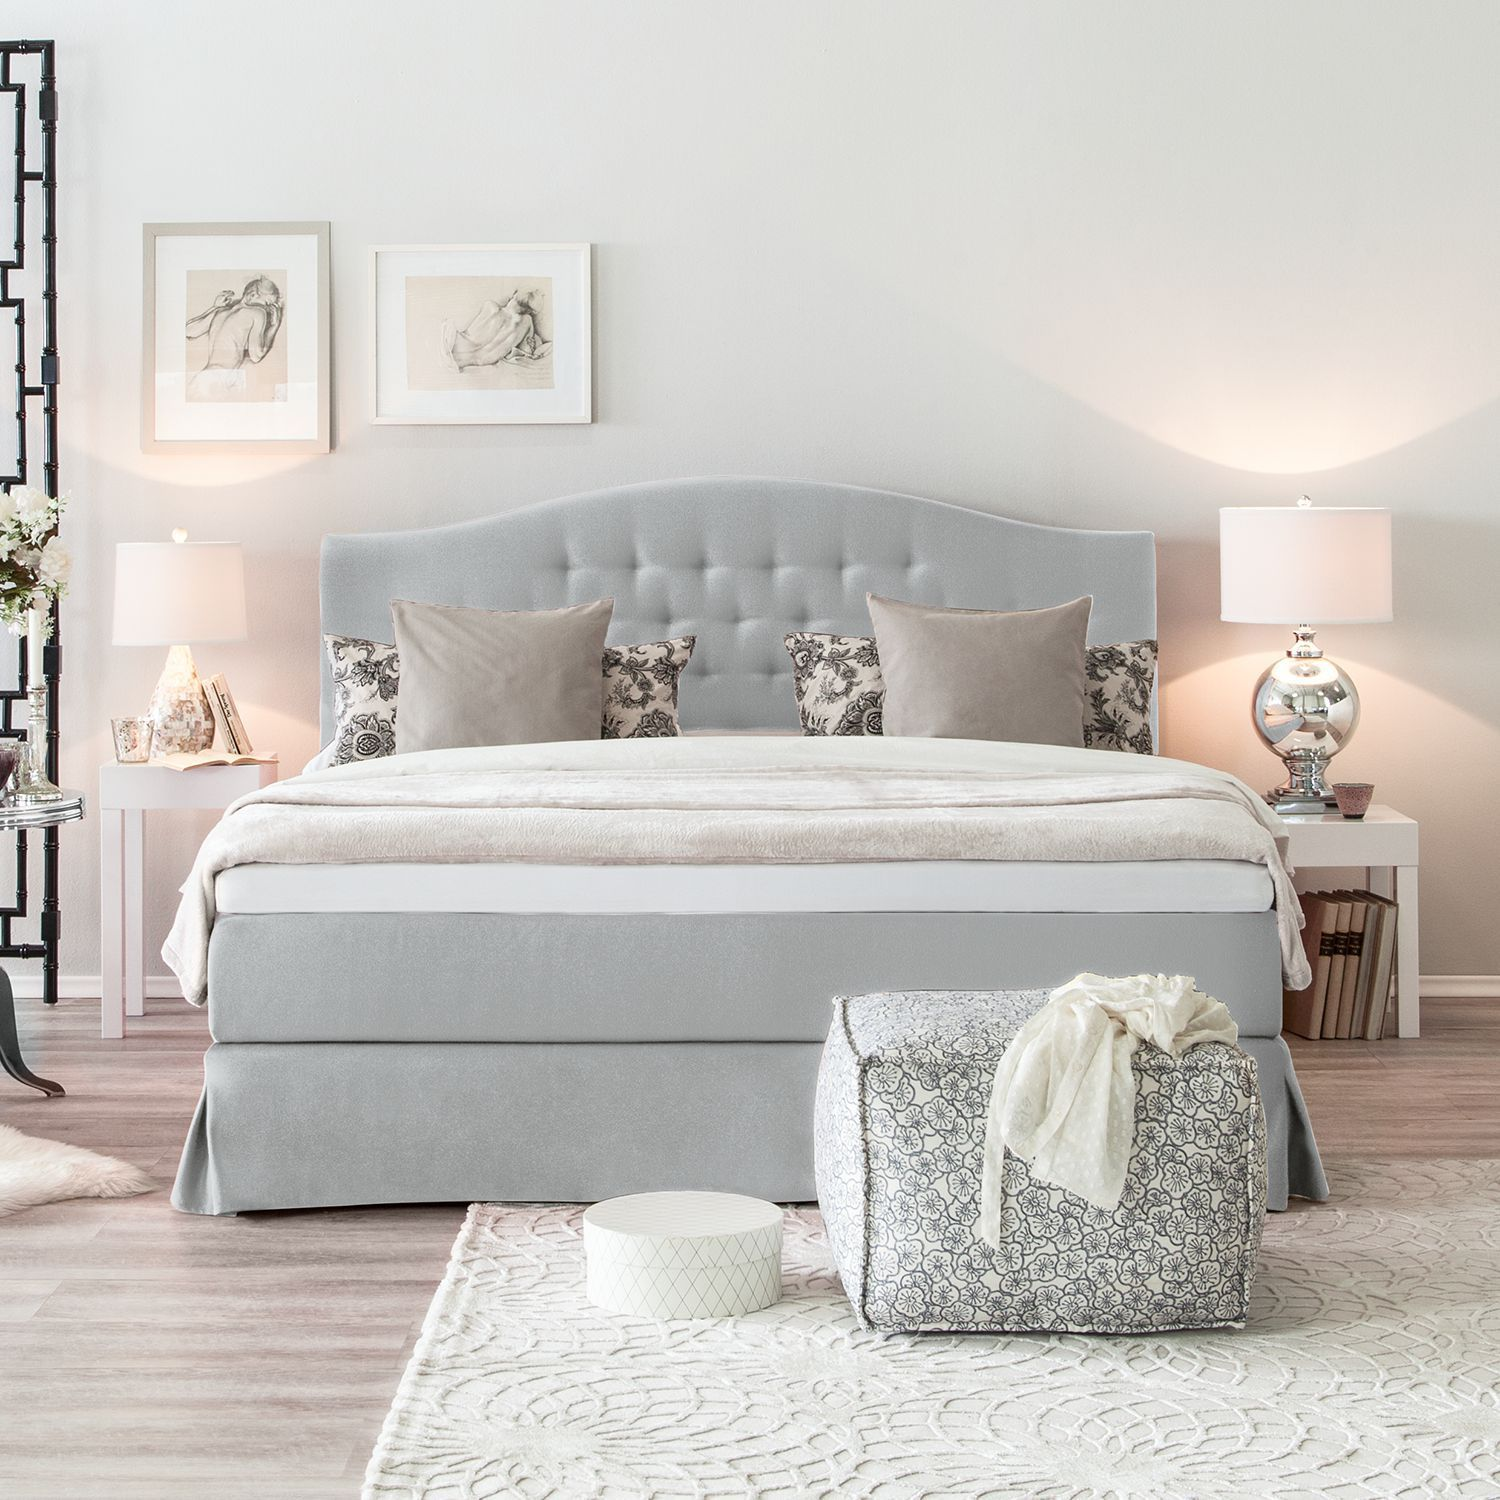 Maison Belfort Box Spring Bed La Chatre 140x200 Cm Fabric Light Gray With Mattress Top In 2020 Bed Kids Bed Canopy Bedding Master Bedroom